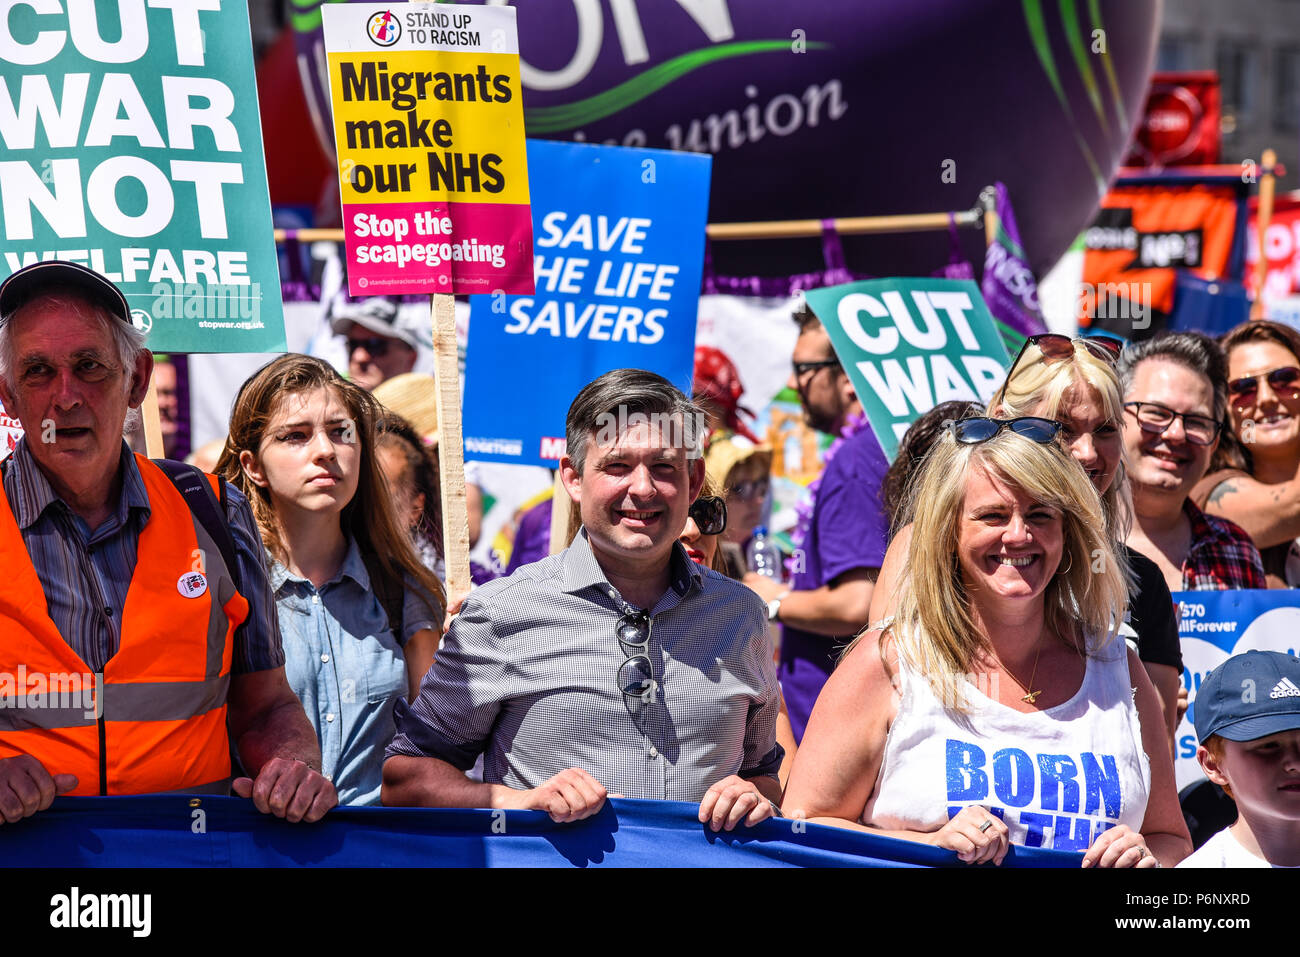 Jonathan Ashworth MP at the 70th anniversary of the National Health Service march demonstration in London, UK. NHS70 - Stock Image